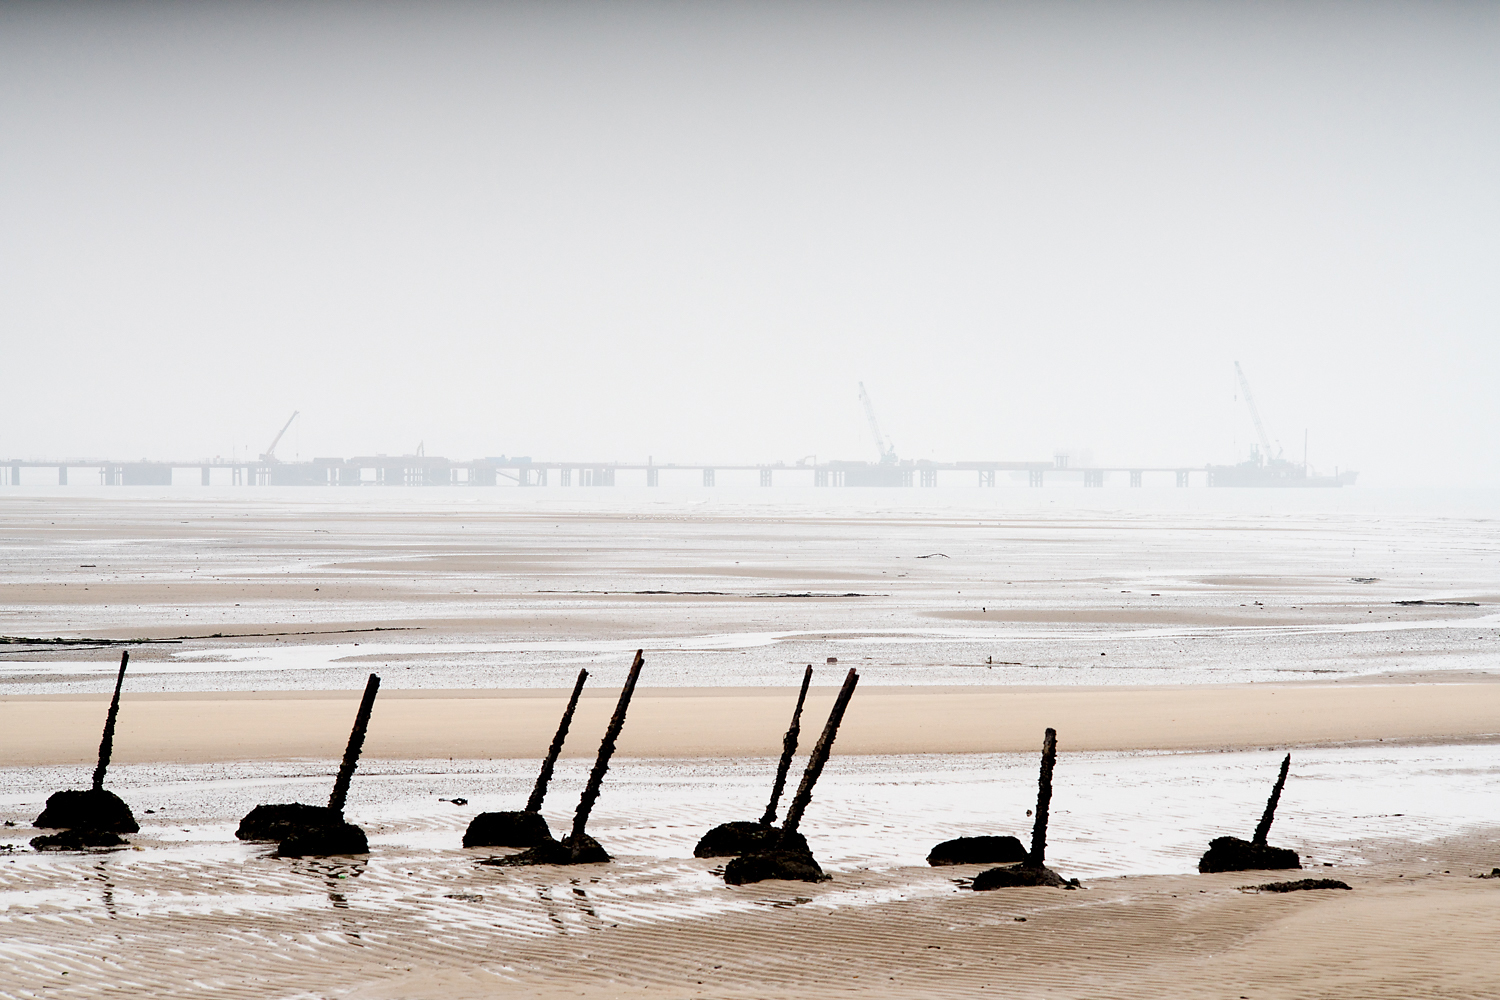 A foggy view of the bridge being built between Kinmen and Lieyu Island, seen from Kinmen's spike-lined northwest coast at low tide. One villager said, 'What's the point if the bridge goes only to Little Kinmen, which has nothing? It must link directly to Xiamen; only then is it a useful bridge. Goods and people can flow. But that's a long way away in the future.'